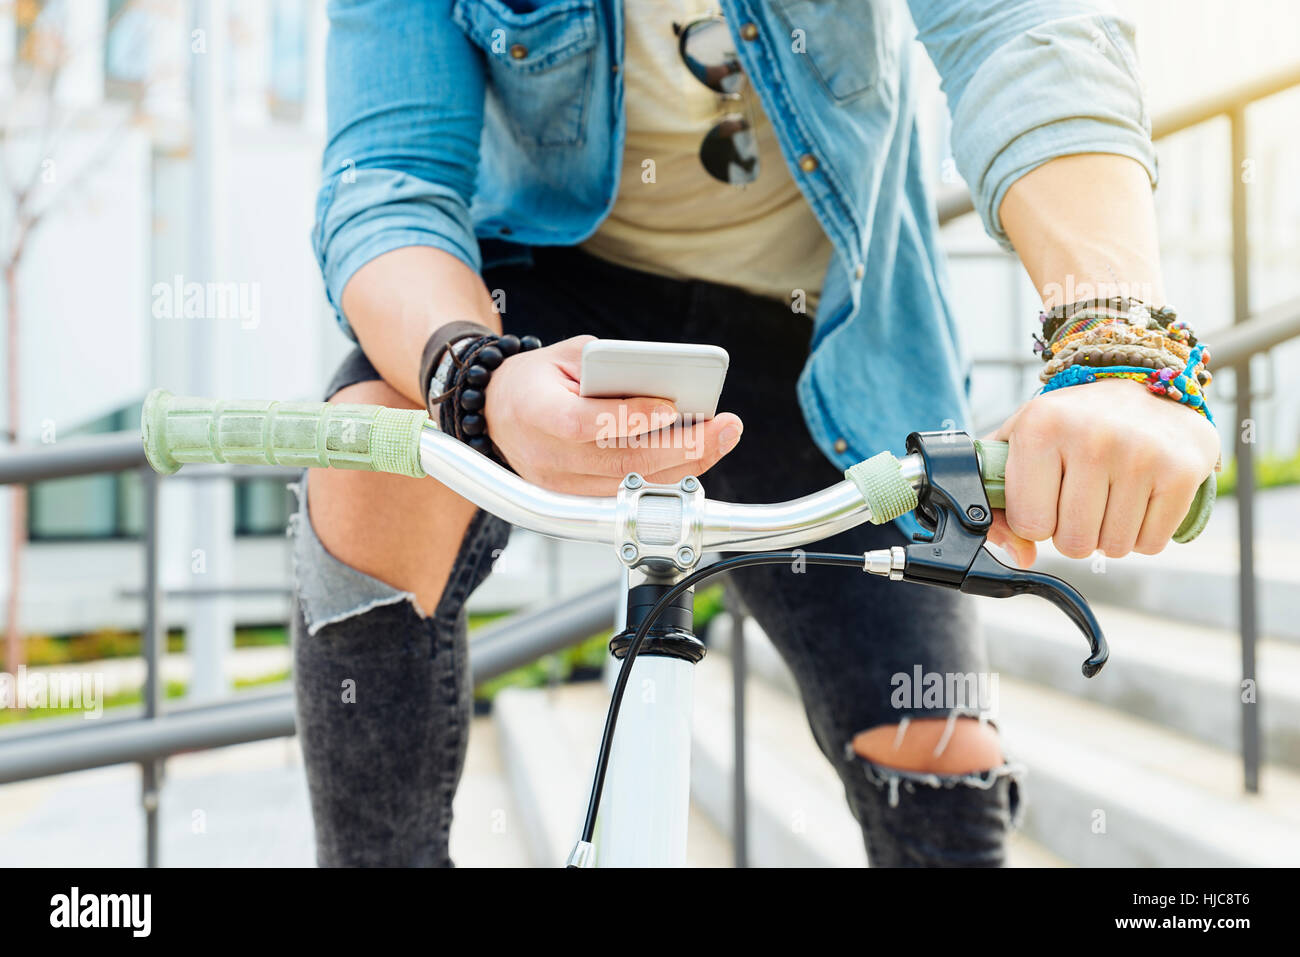 Handsome young man with mobile phone and fixed gear bicycle in the street. - Stock Image